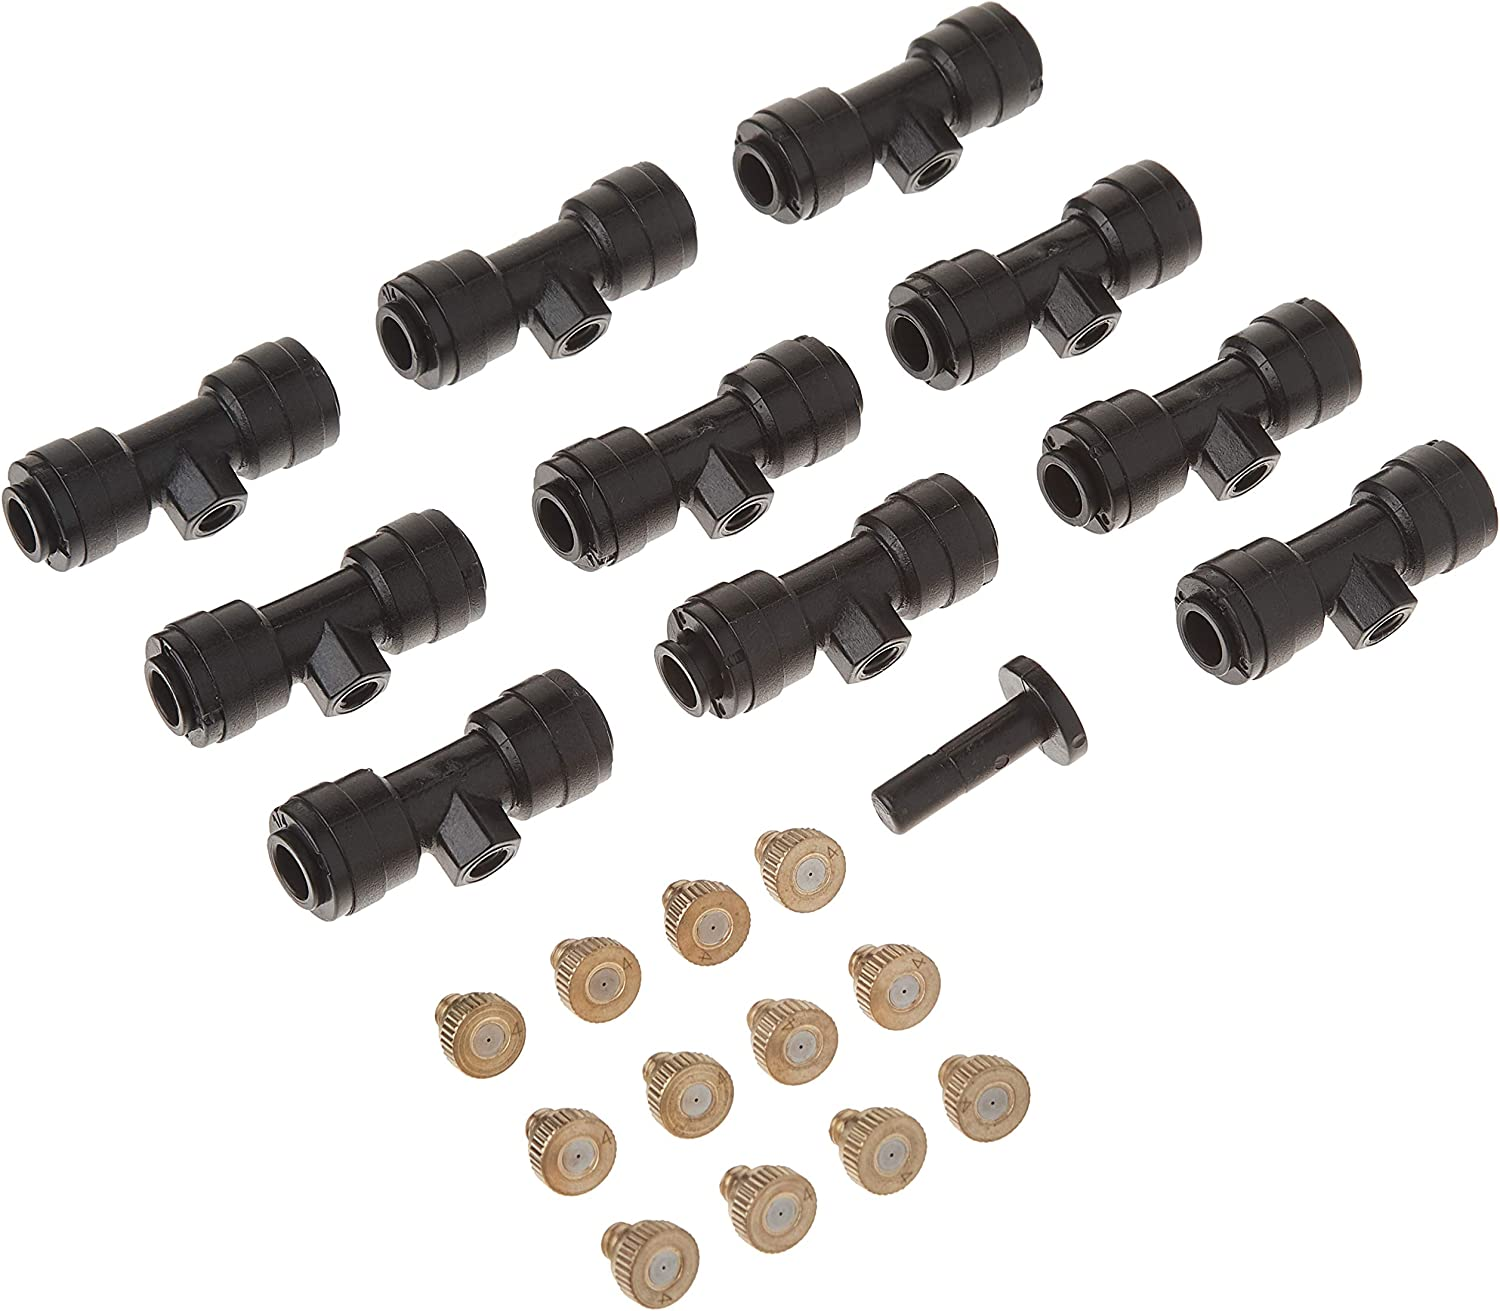 1/4'' Slip-Lock, Outdoor Mist Tee Nozzle, Water Brass Misting Mister Nozzle, Misting Nozzles Kit, with Thread 10/24 UNC Tees 10pcs and 0.4mm Orifice Nozzle 12pcs, for Outdoor Cooling System